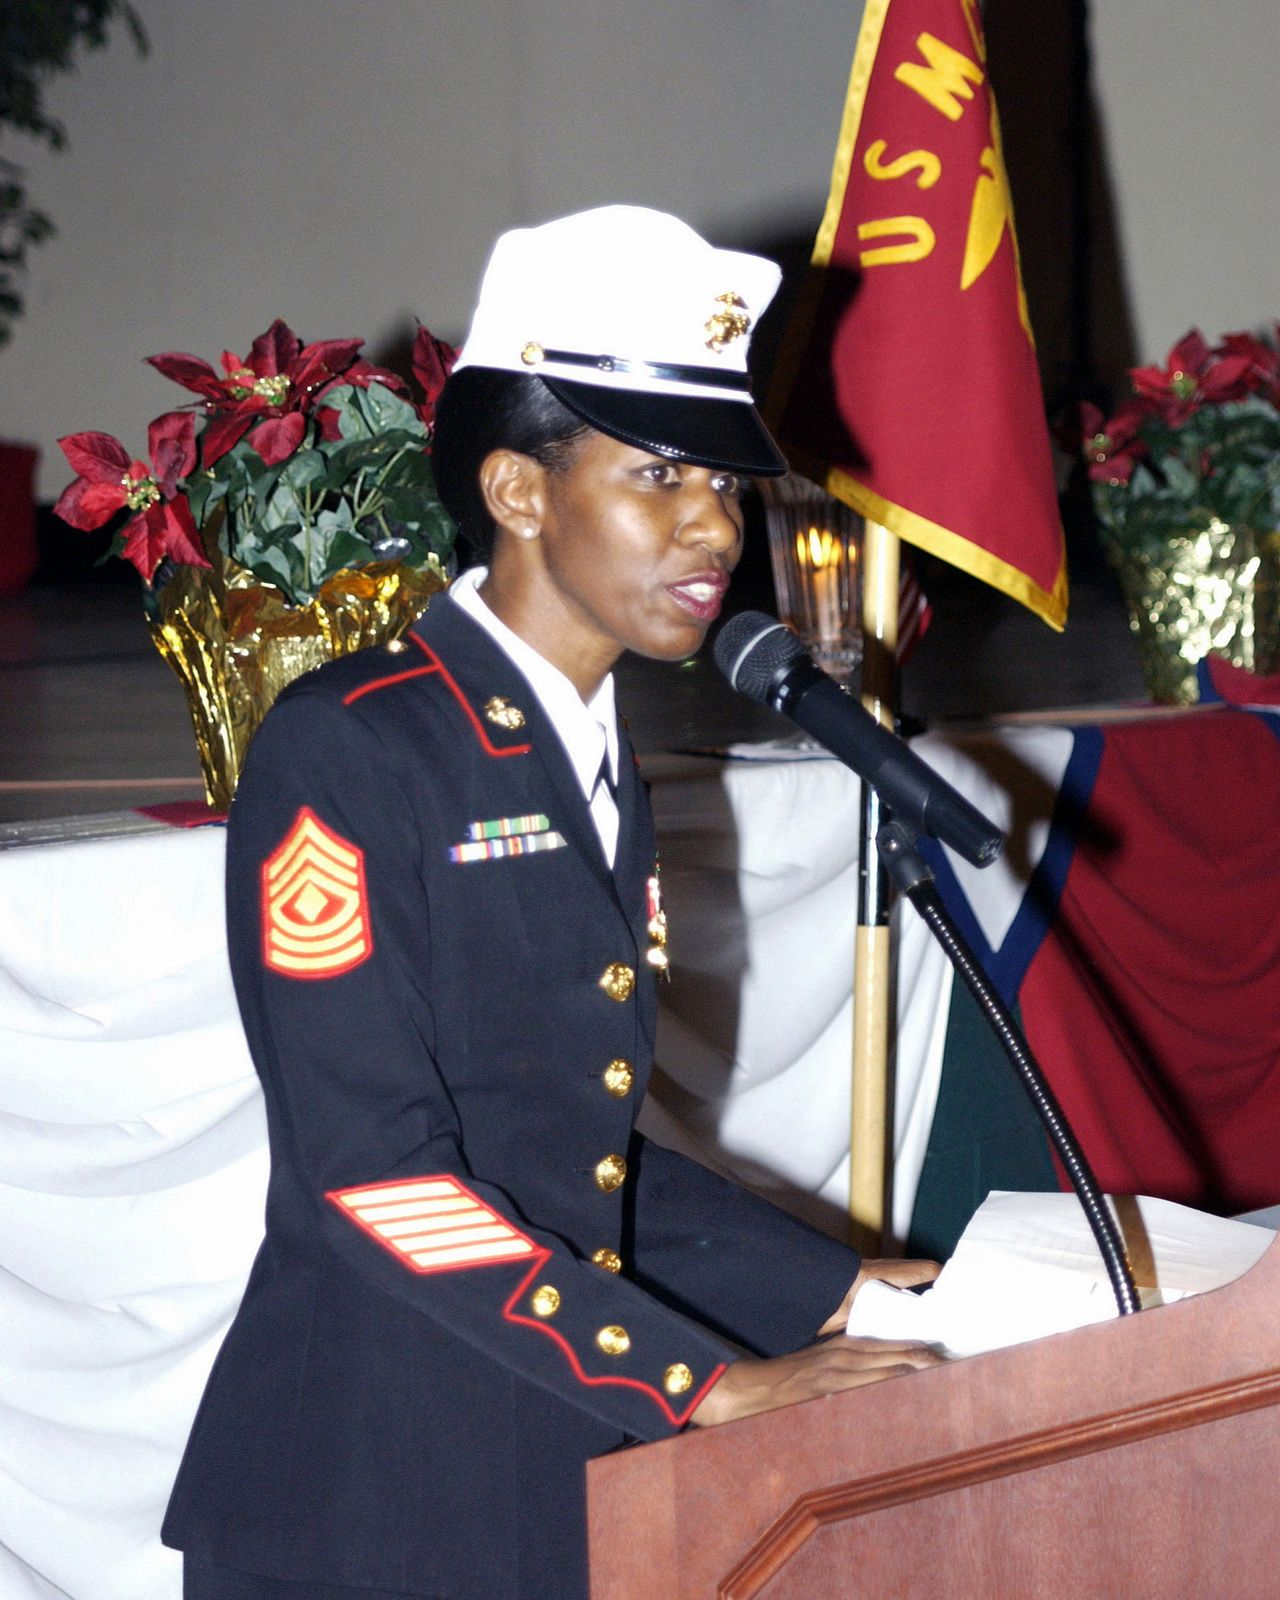 Download Image of US Marine Corps (USMC) First Sergeant